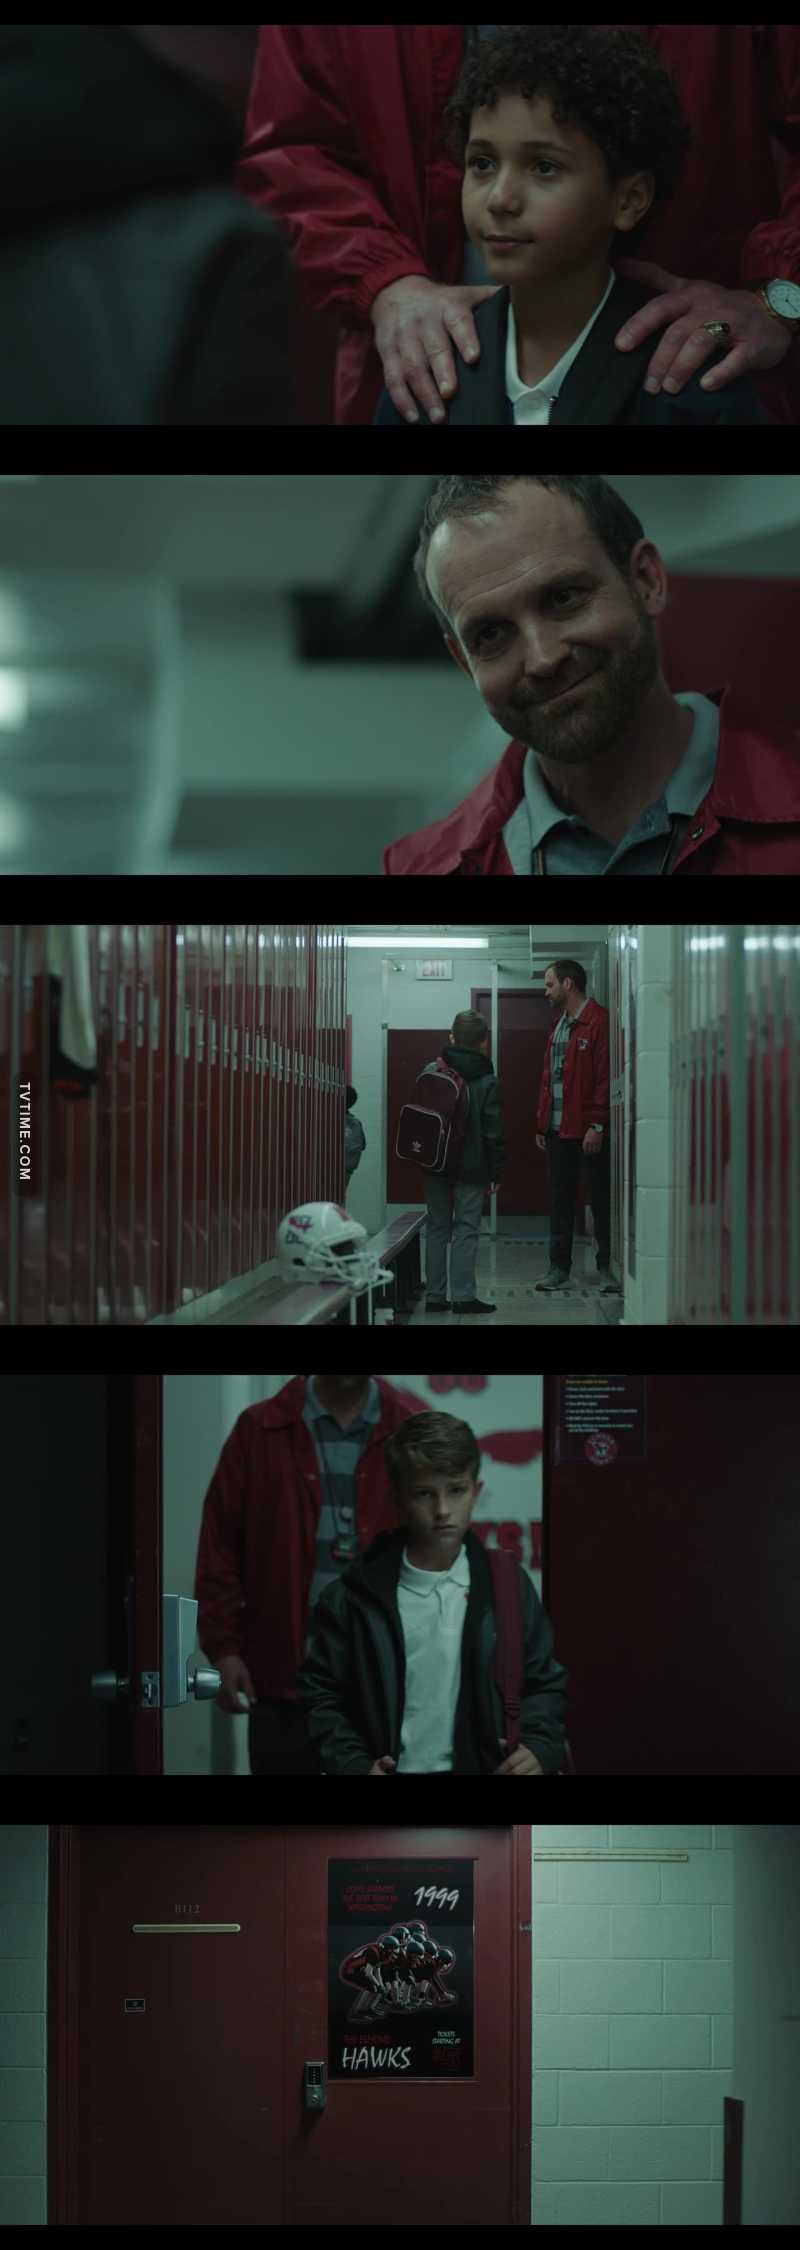 That scene broke me. Such a brave thing to do for a kid, and so heartbreaking to see that he grew up so fast. I had goosebumps watching it, the coach was disgusting.